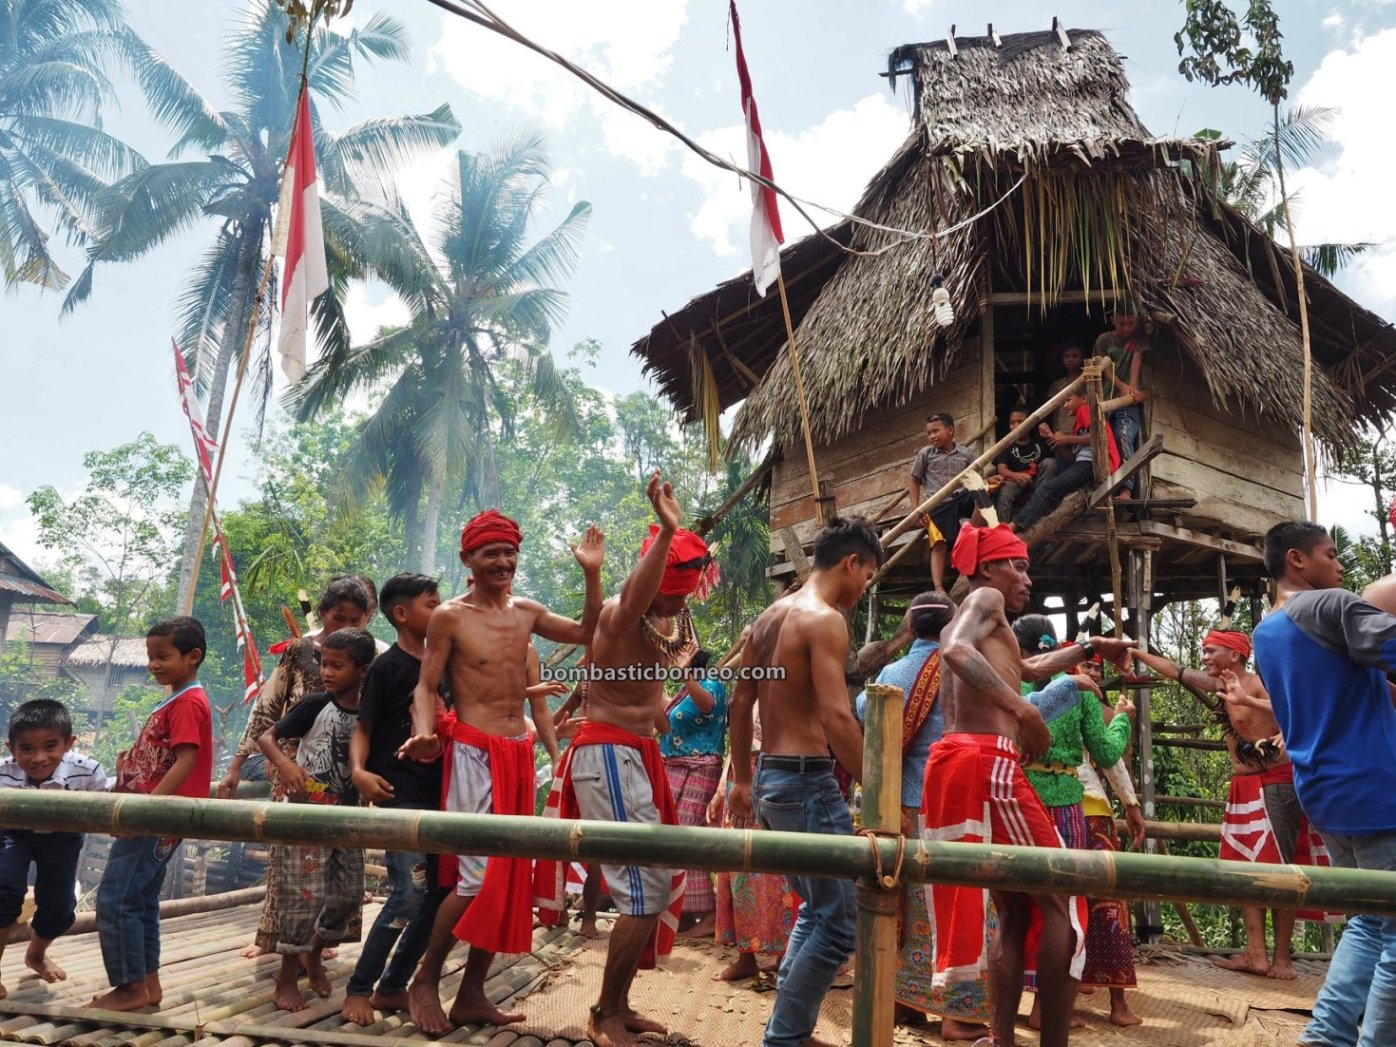 Gawai Padi, Paddy Harvest Festival, traditional, backpackers, Kalimantan Barat, Desa Bengkawan, Dayak Kowon't, native, tribe, Rumah Adat Baruk, skull house, tourist attraction, Travel guide, 婆罗洲比达友族文化, 印尼西加里曼丹, 原住民丰收节日